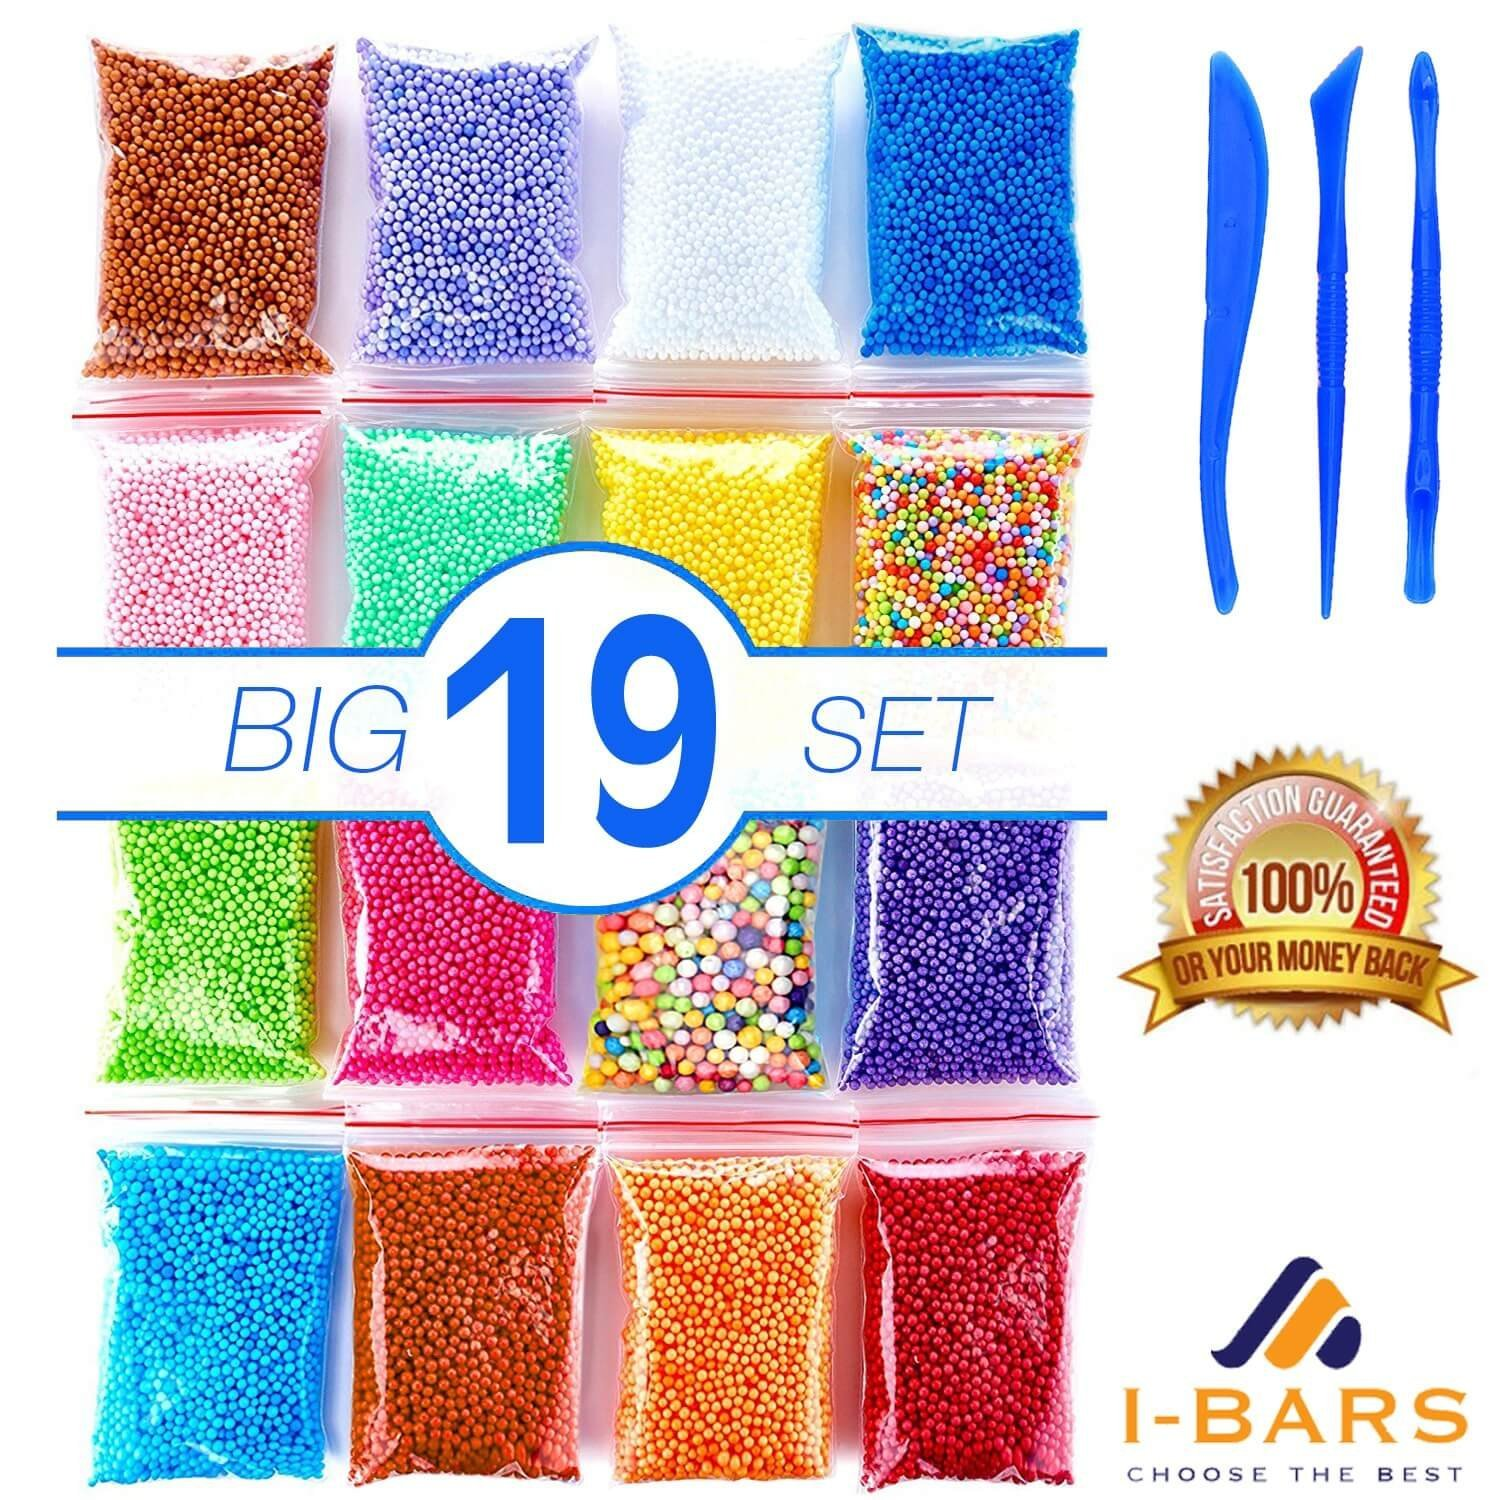 Foam Beads for Slime | Micro Floam Beads 16 Pack | Craft Foam Beads for Soft Clay | Colorful Micro Foam Beads Balls for DIY Slime | 16 Bags (80000) Foam Balls and 3 Slime Tools | Newest 2018 |